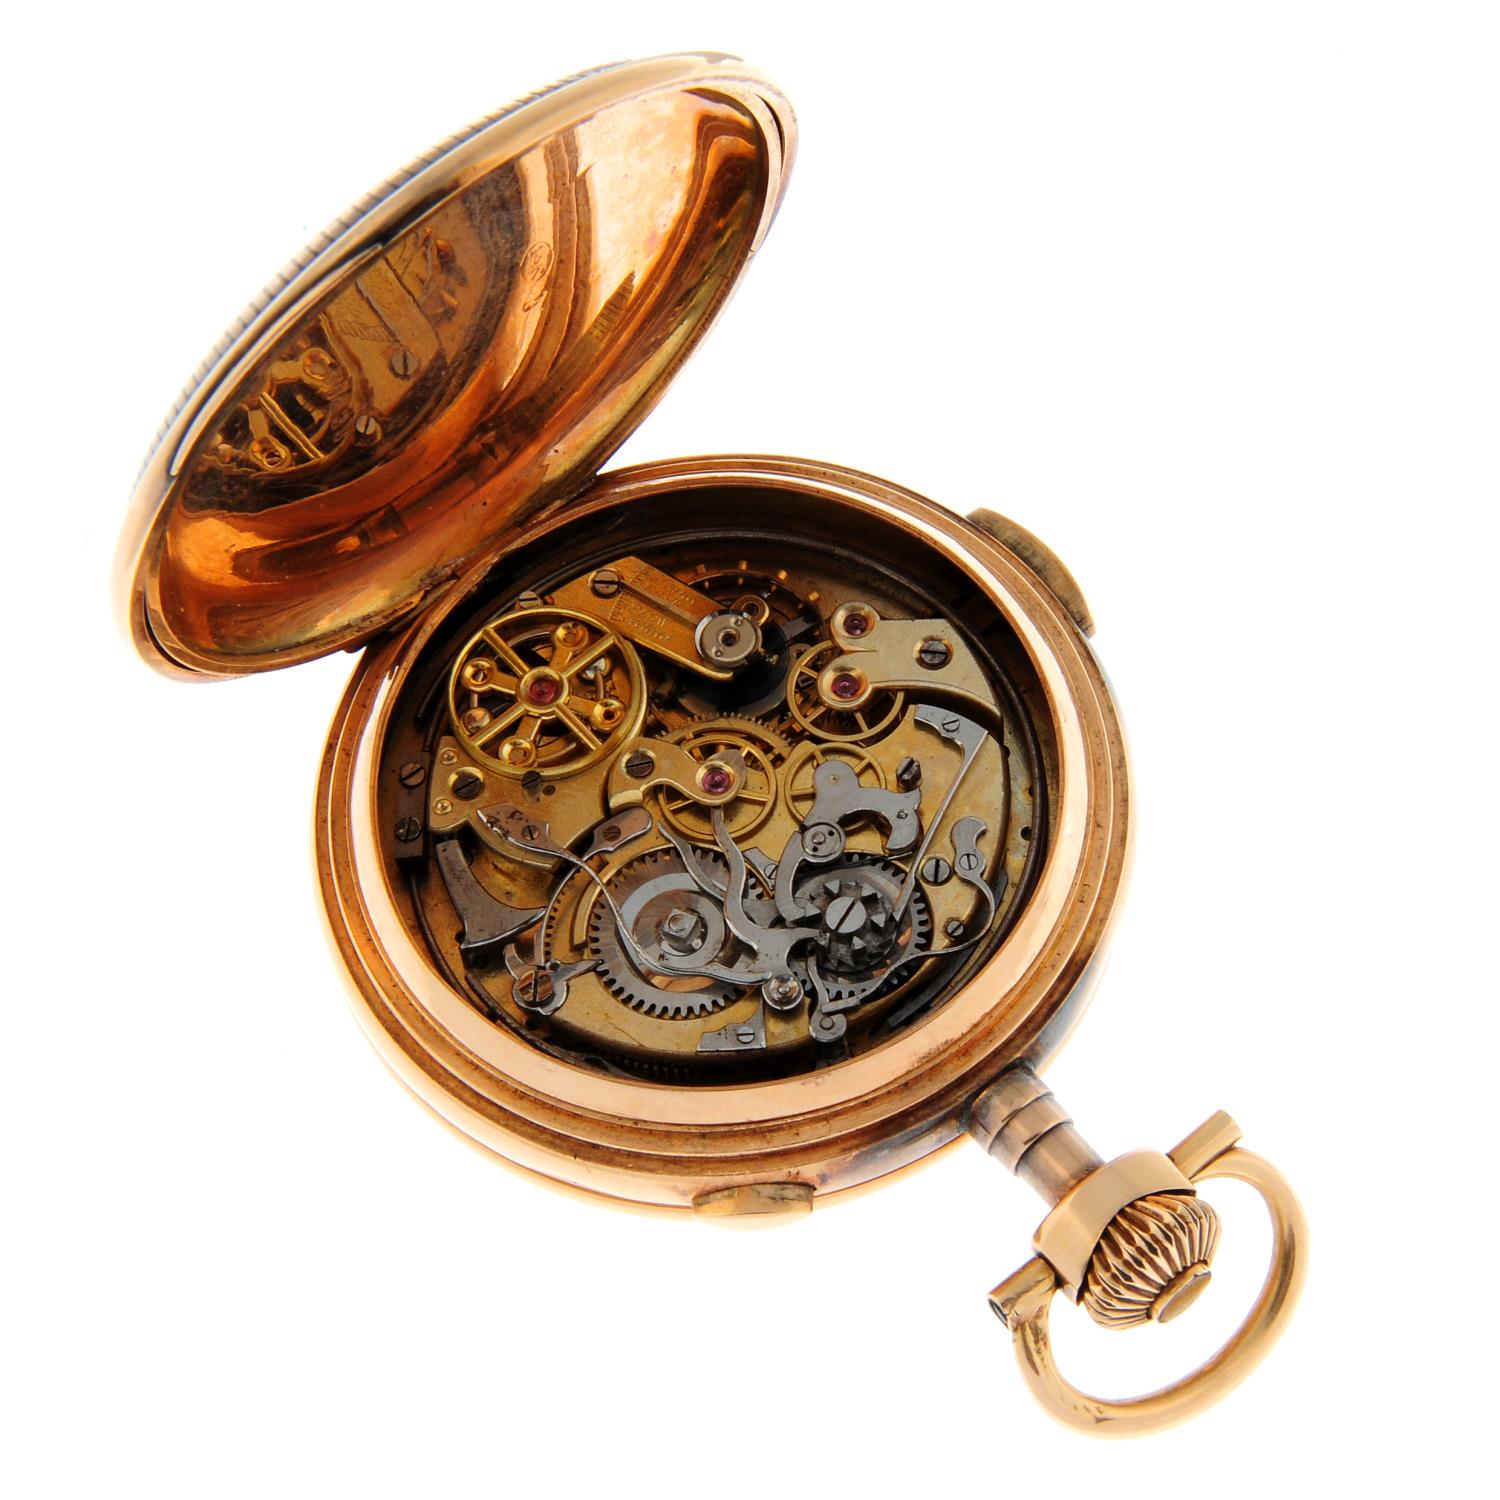 A full hunter chronograph repeater pocket watch. - Image 4 of 4